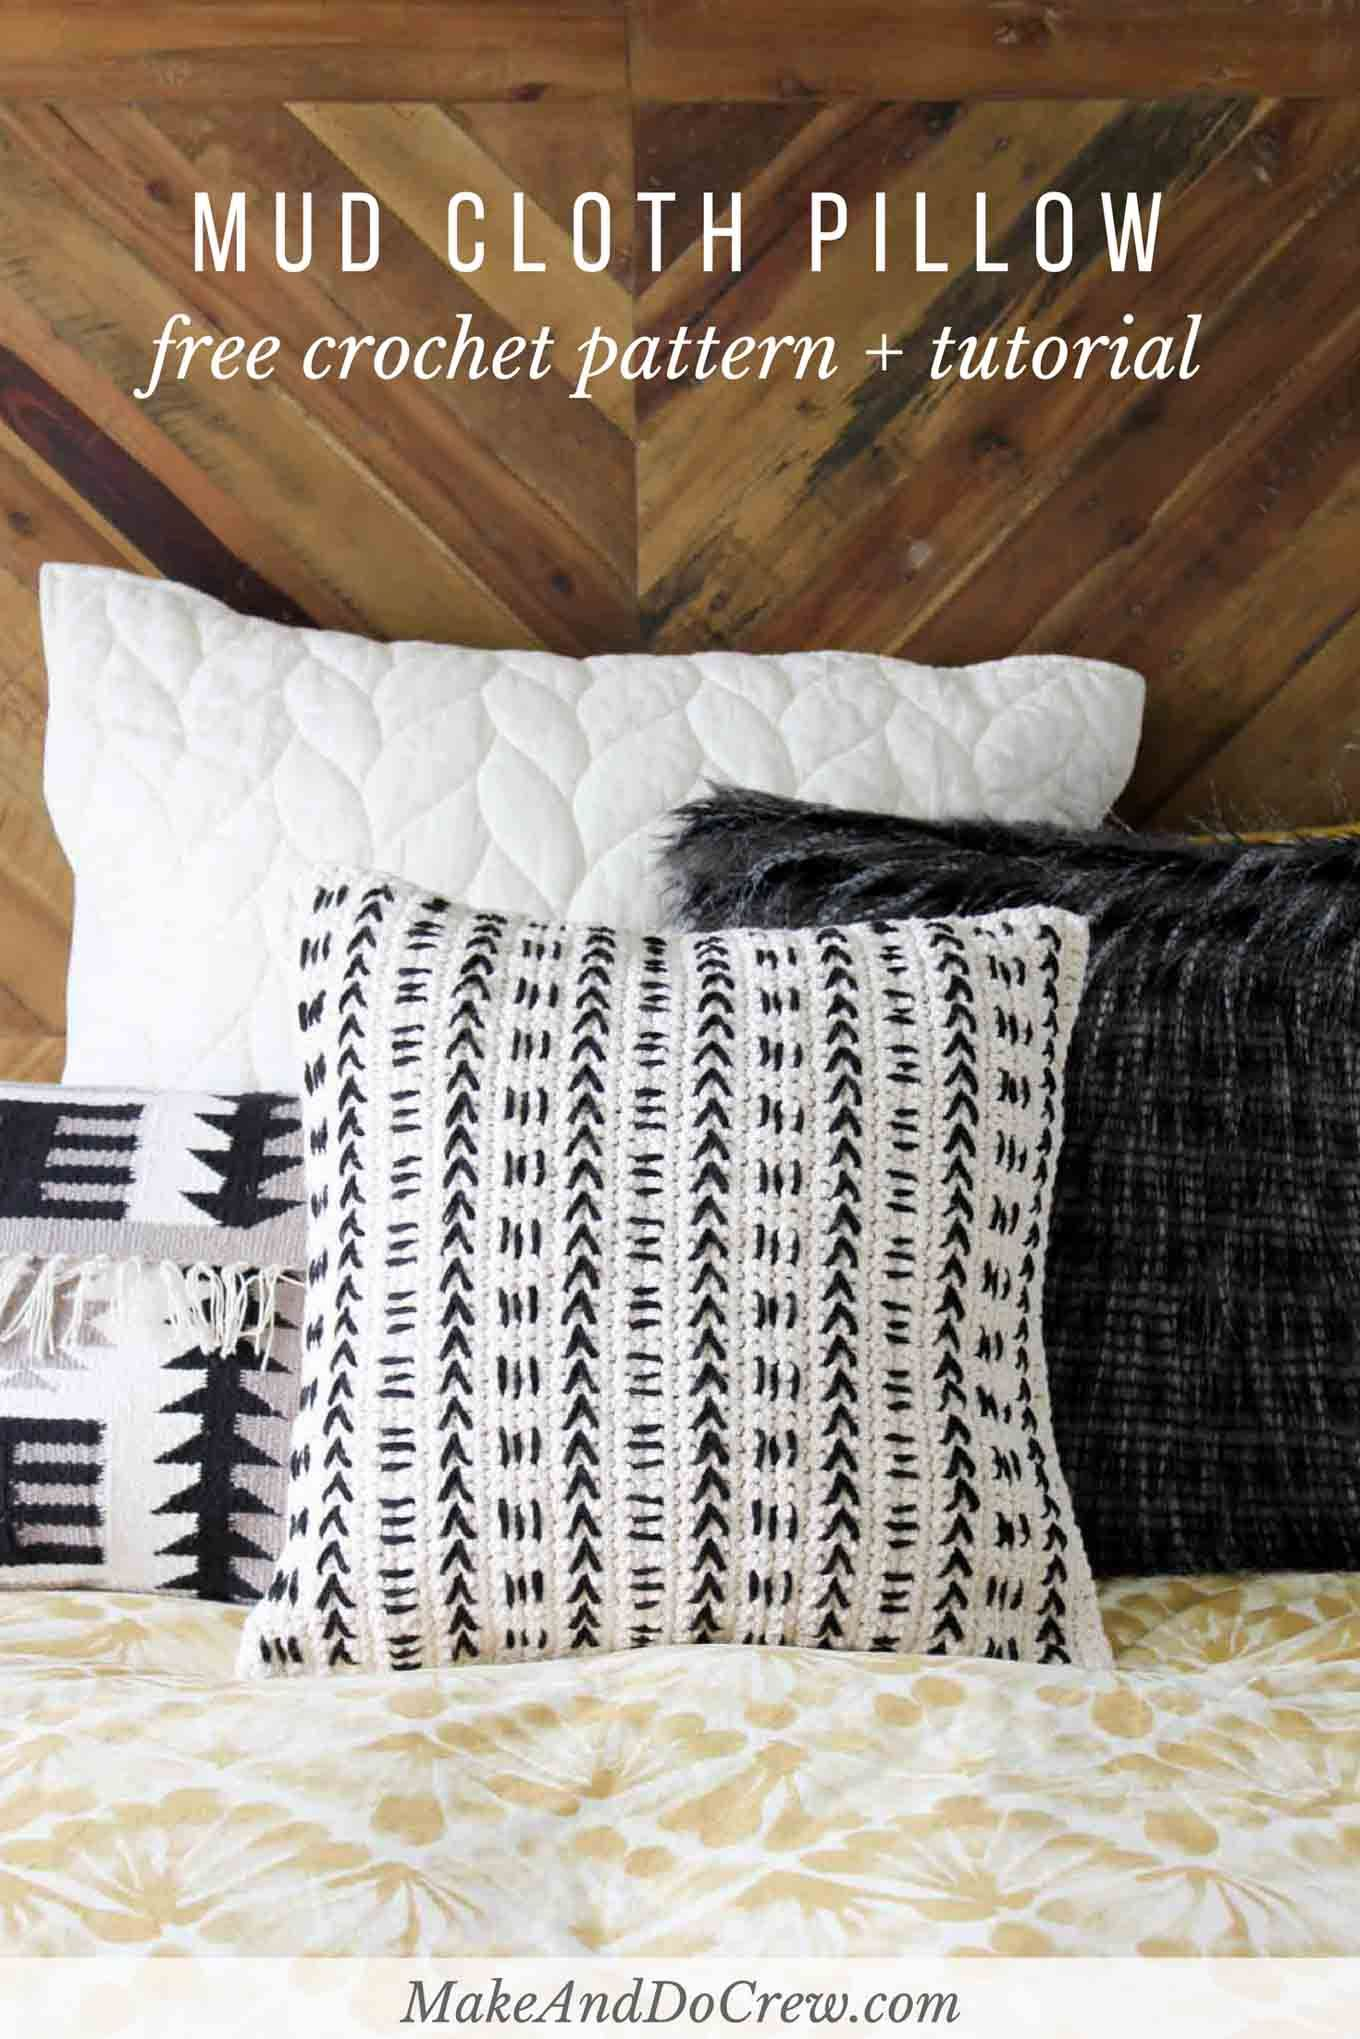 Mud cloth crochet pillow pattern free pattern crochet pillow mud cloth crochet pillow pattern free pattern bankloansurffo Image collections